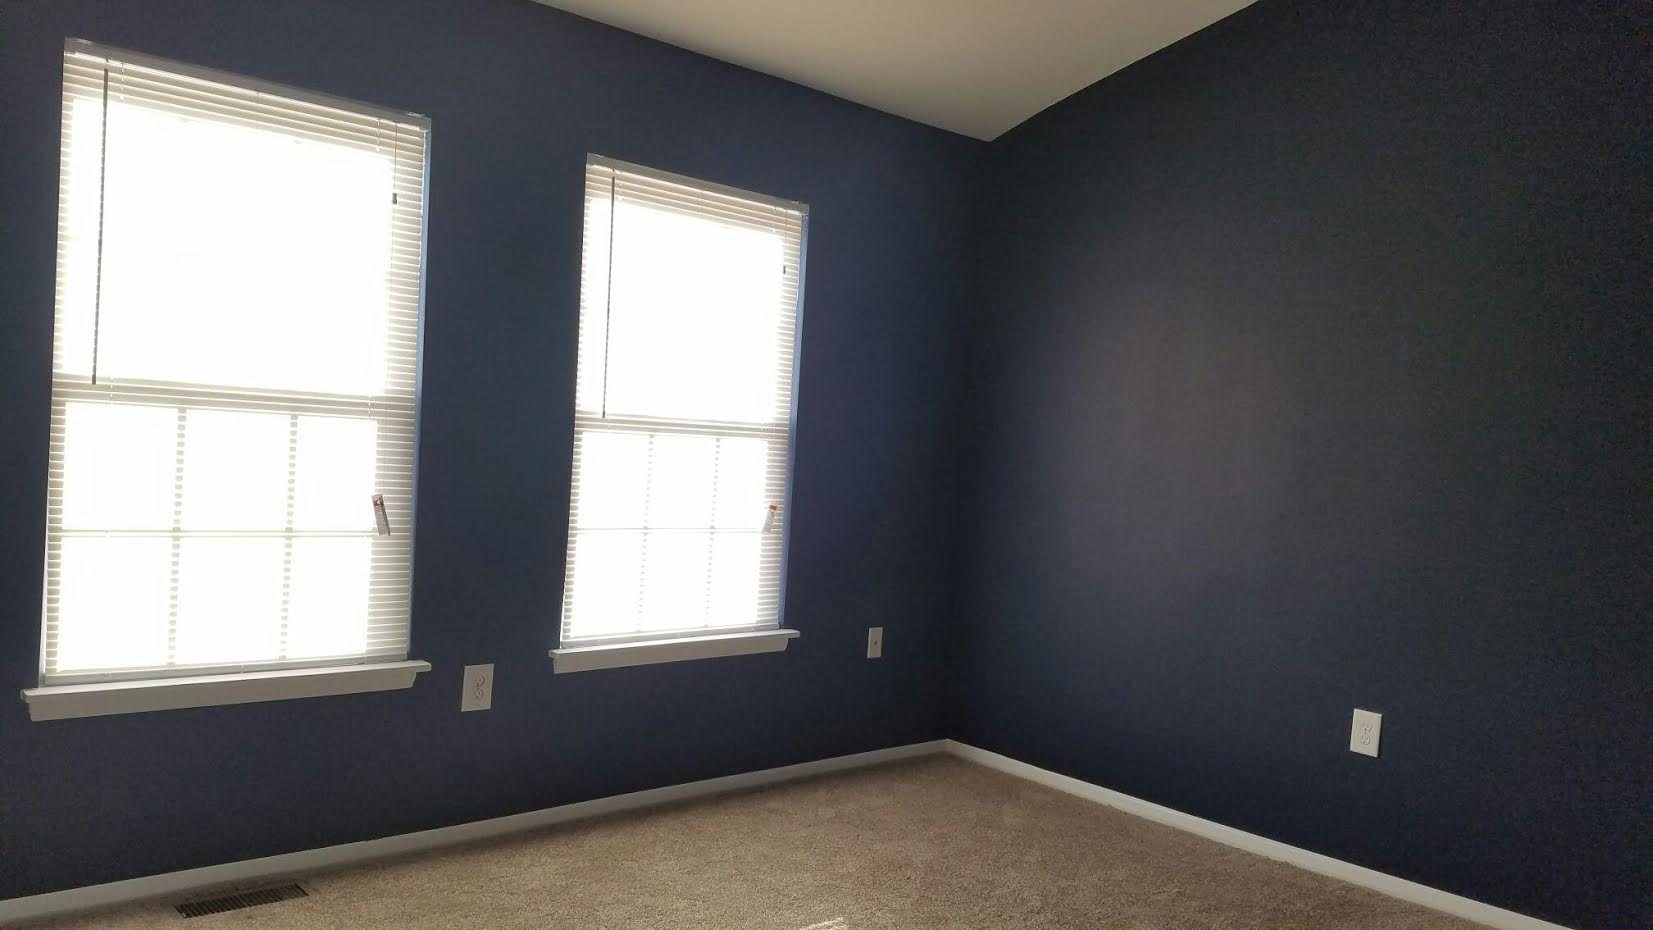 House Painters In Westminster Painting Contractors Of